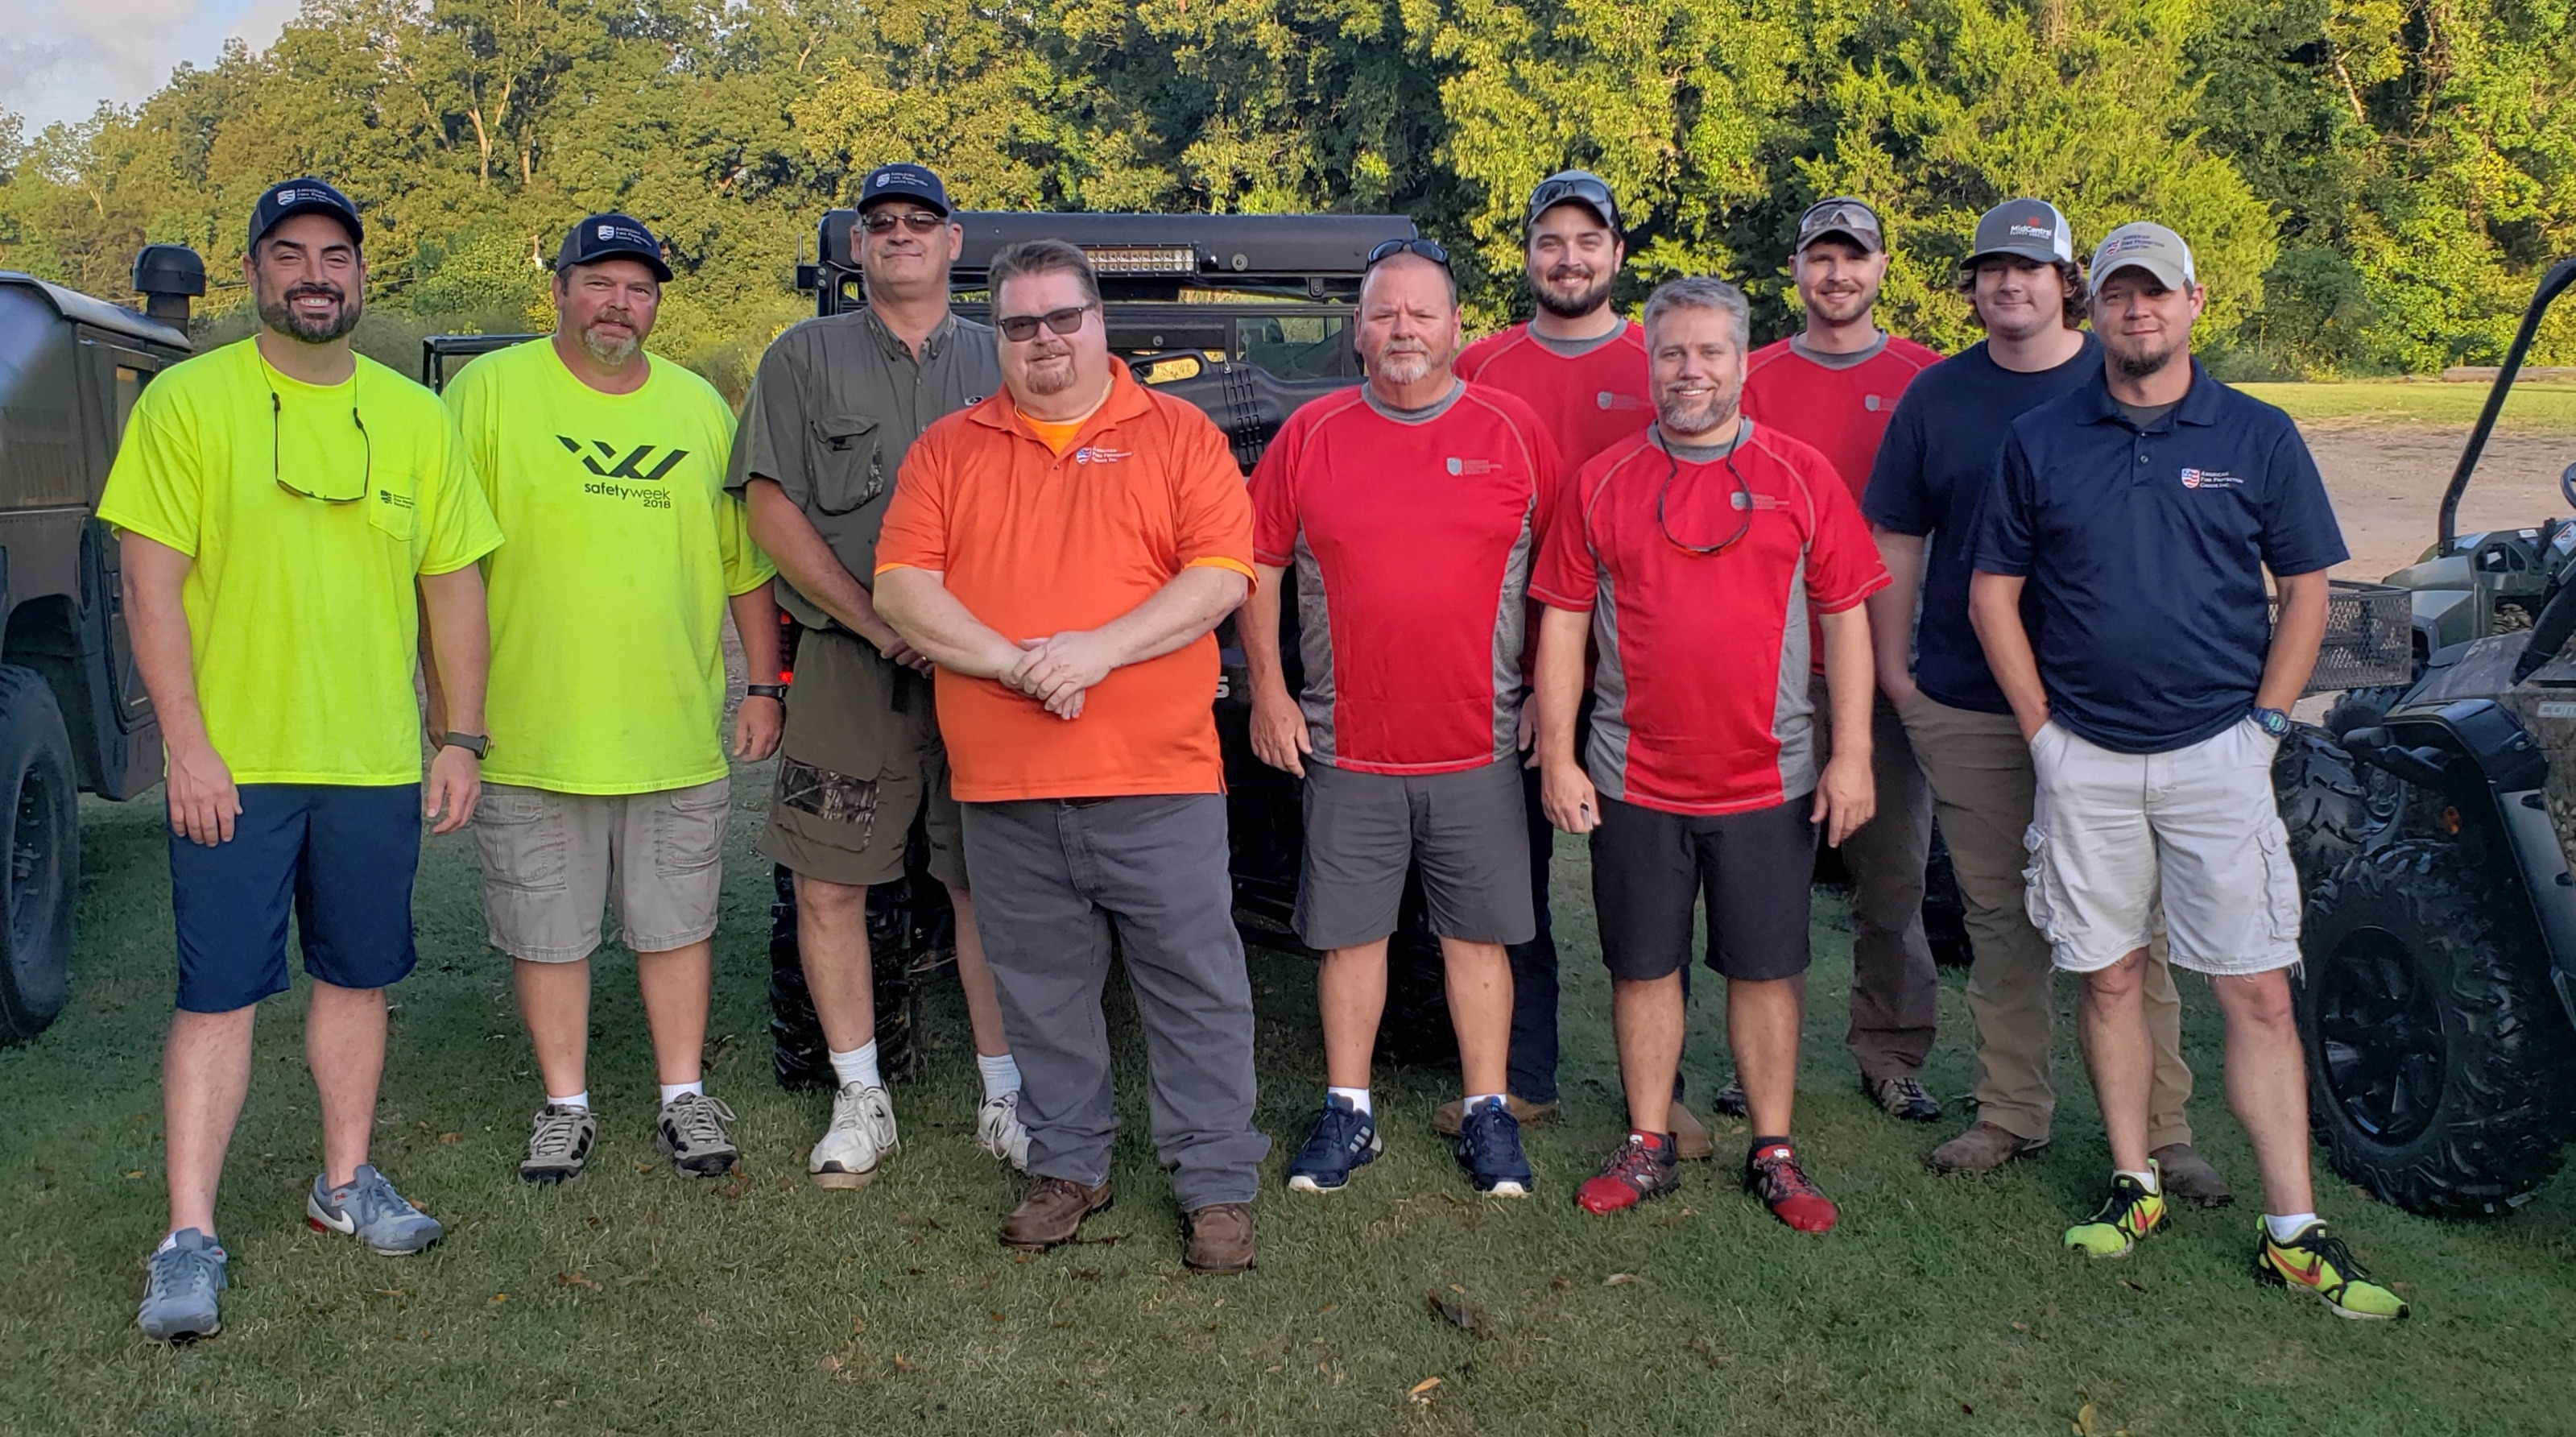 AFPG Monroe and Little Rock Teams Work Together to Raise $6,500 for a Louisiana Children's Home